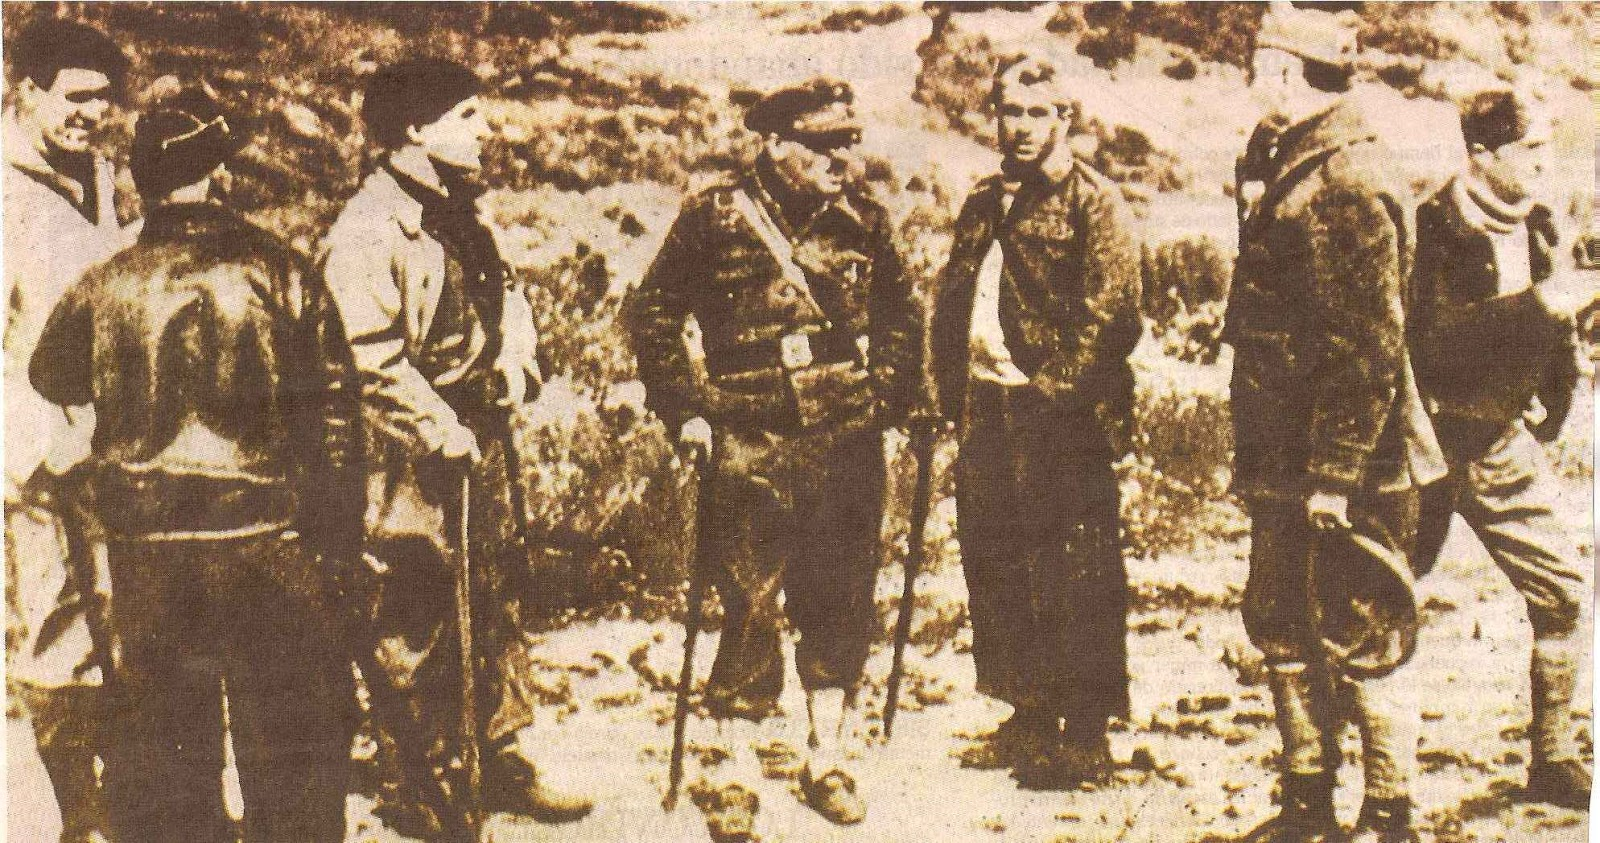 José Antonio Aguirre on the front during the Spanish Civil War